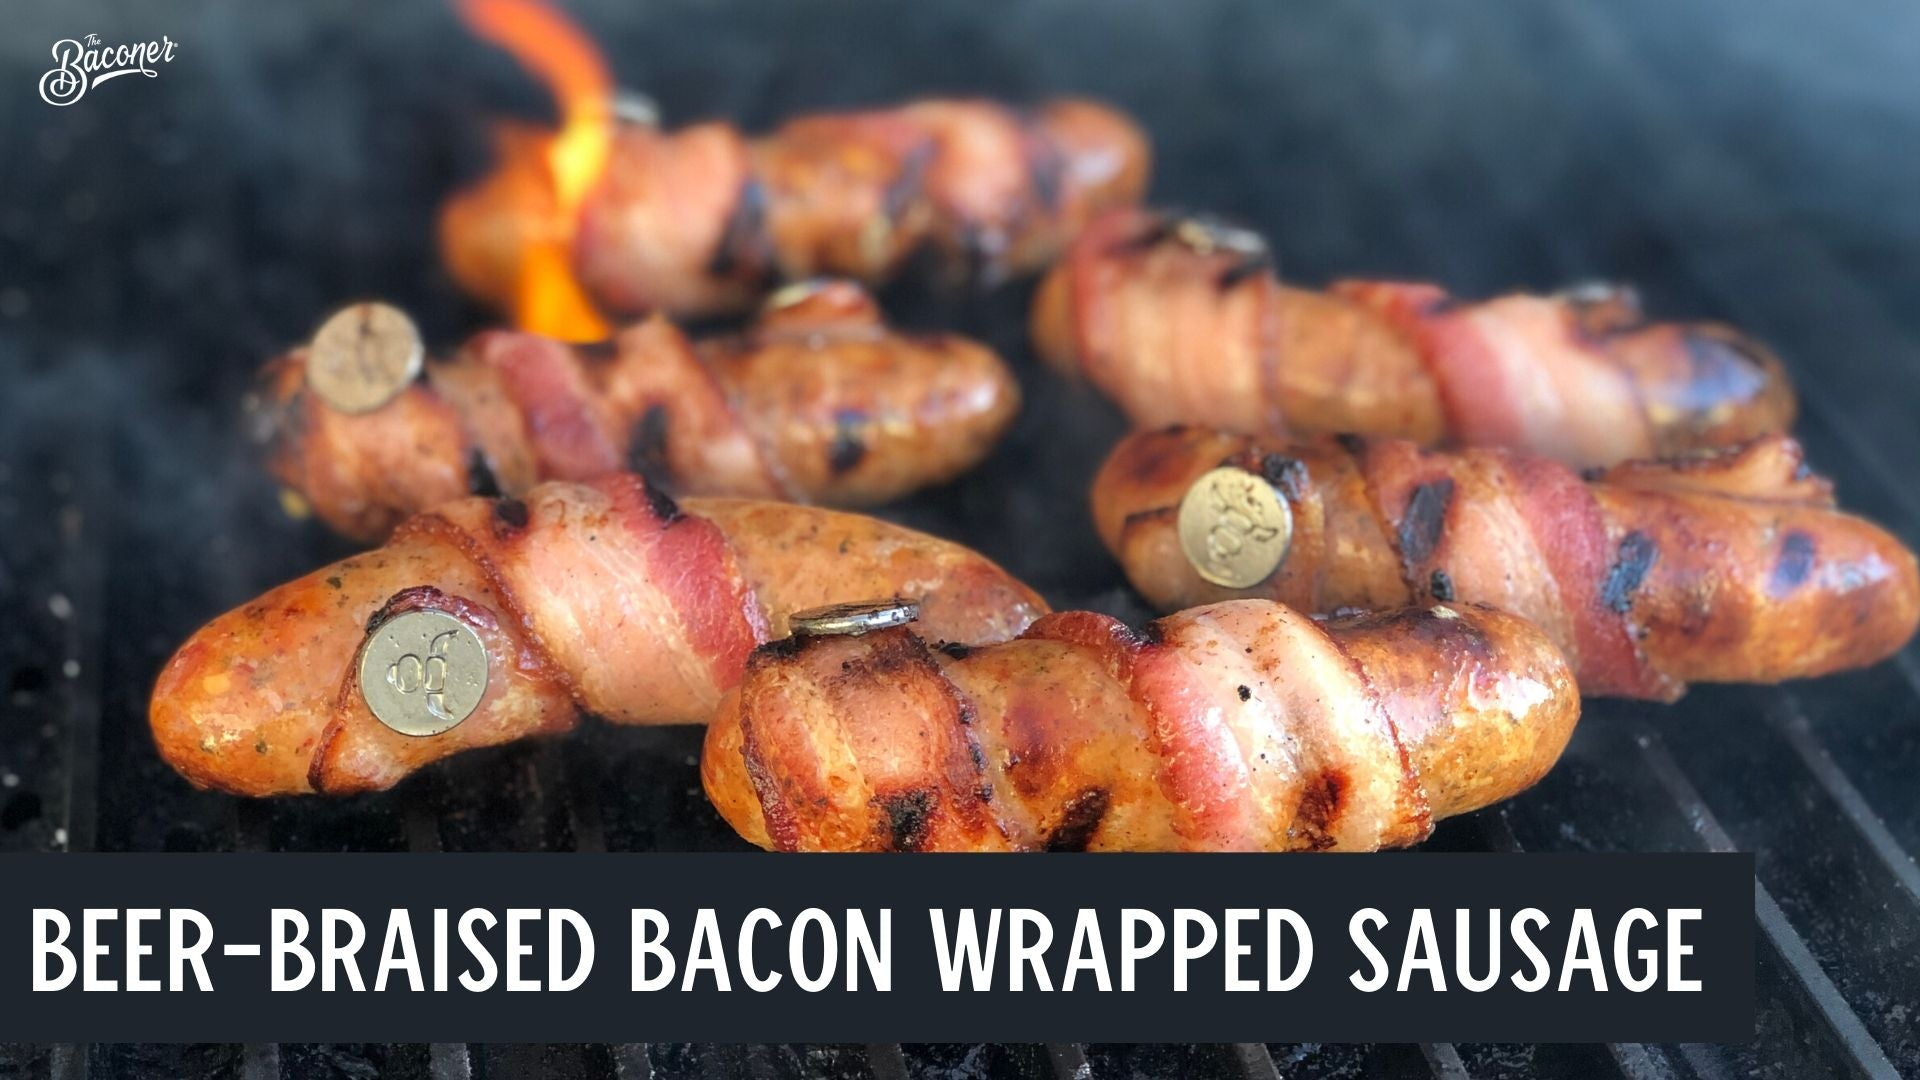 Beer-braised Bacon-wrapped Sausage